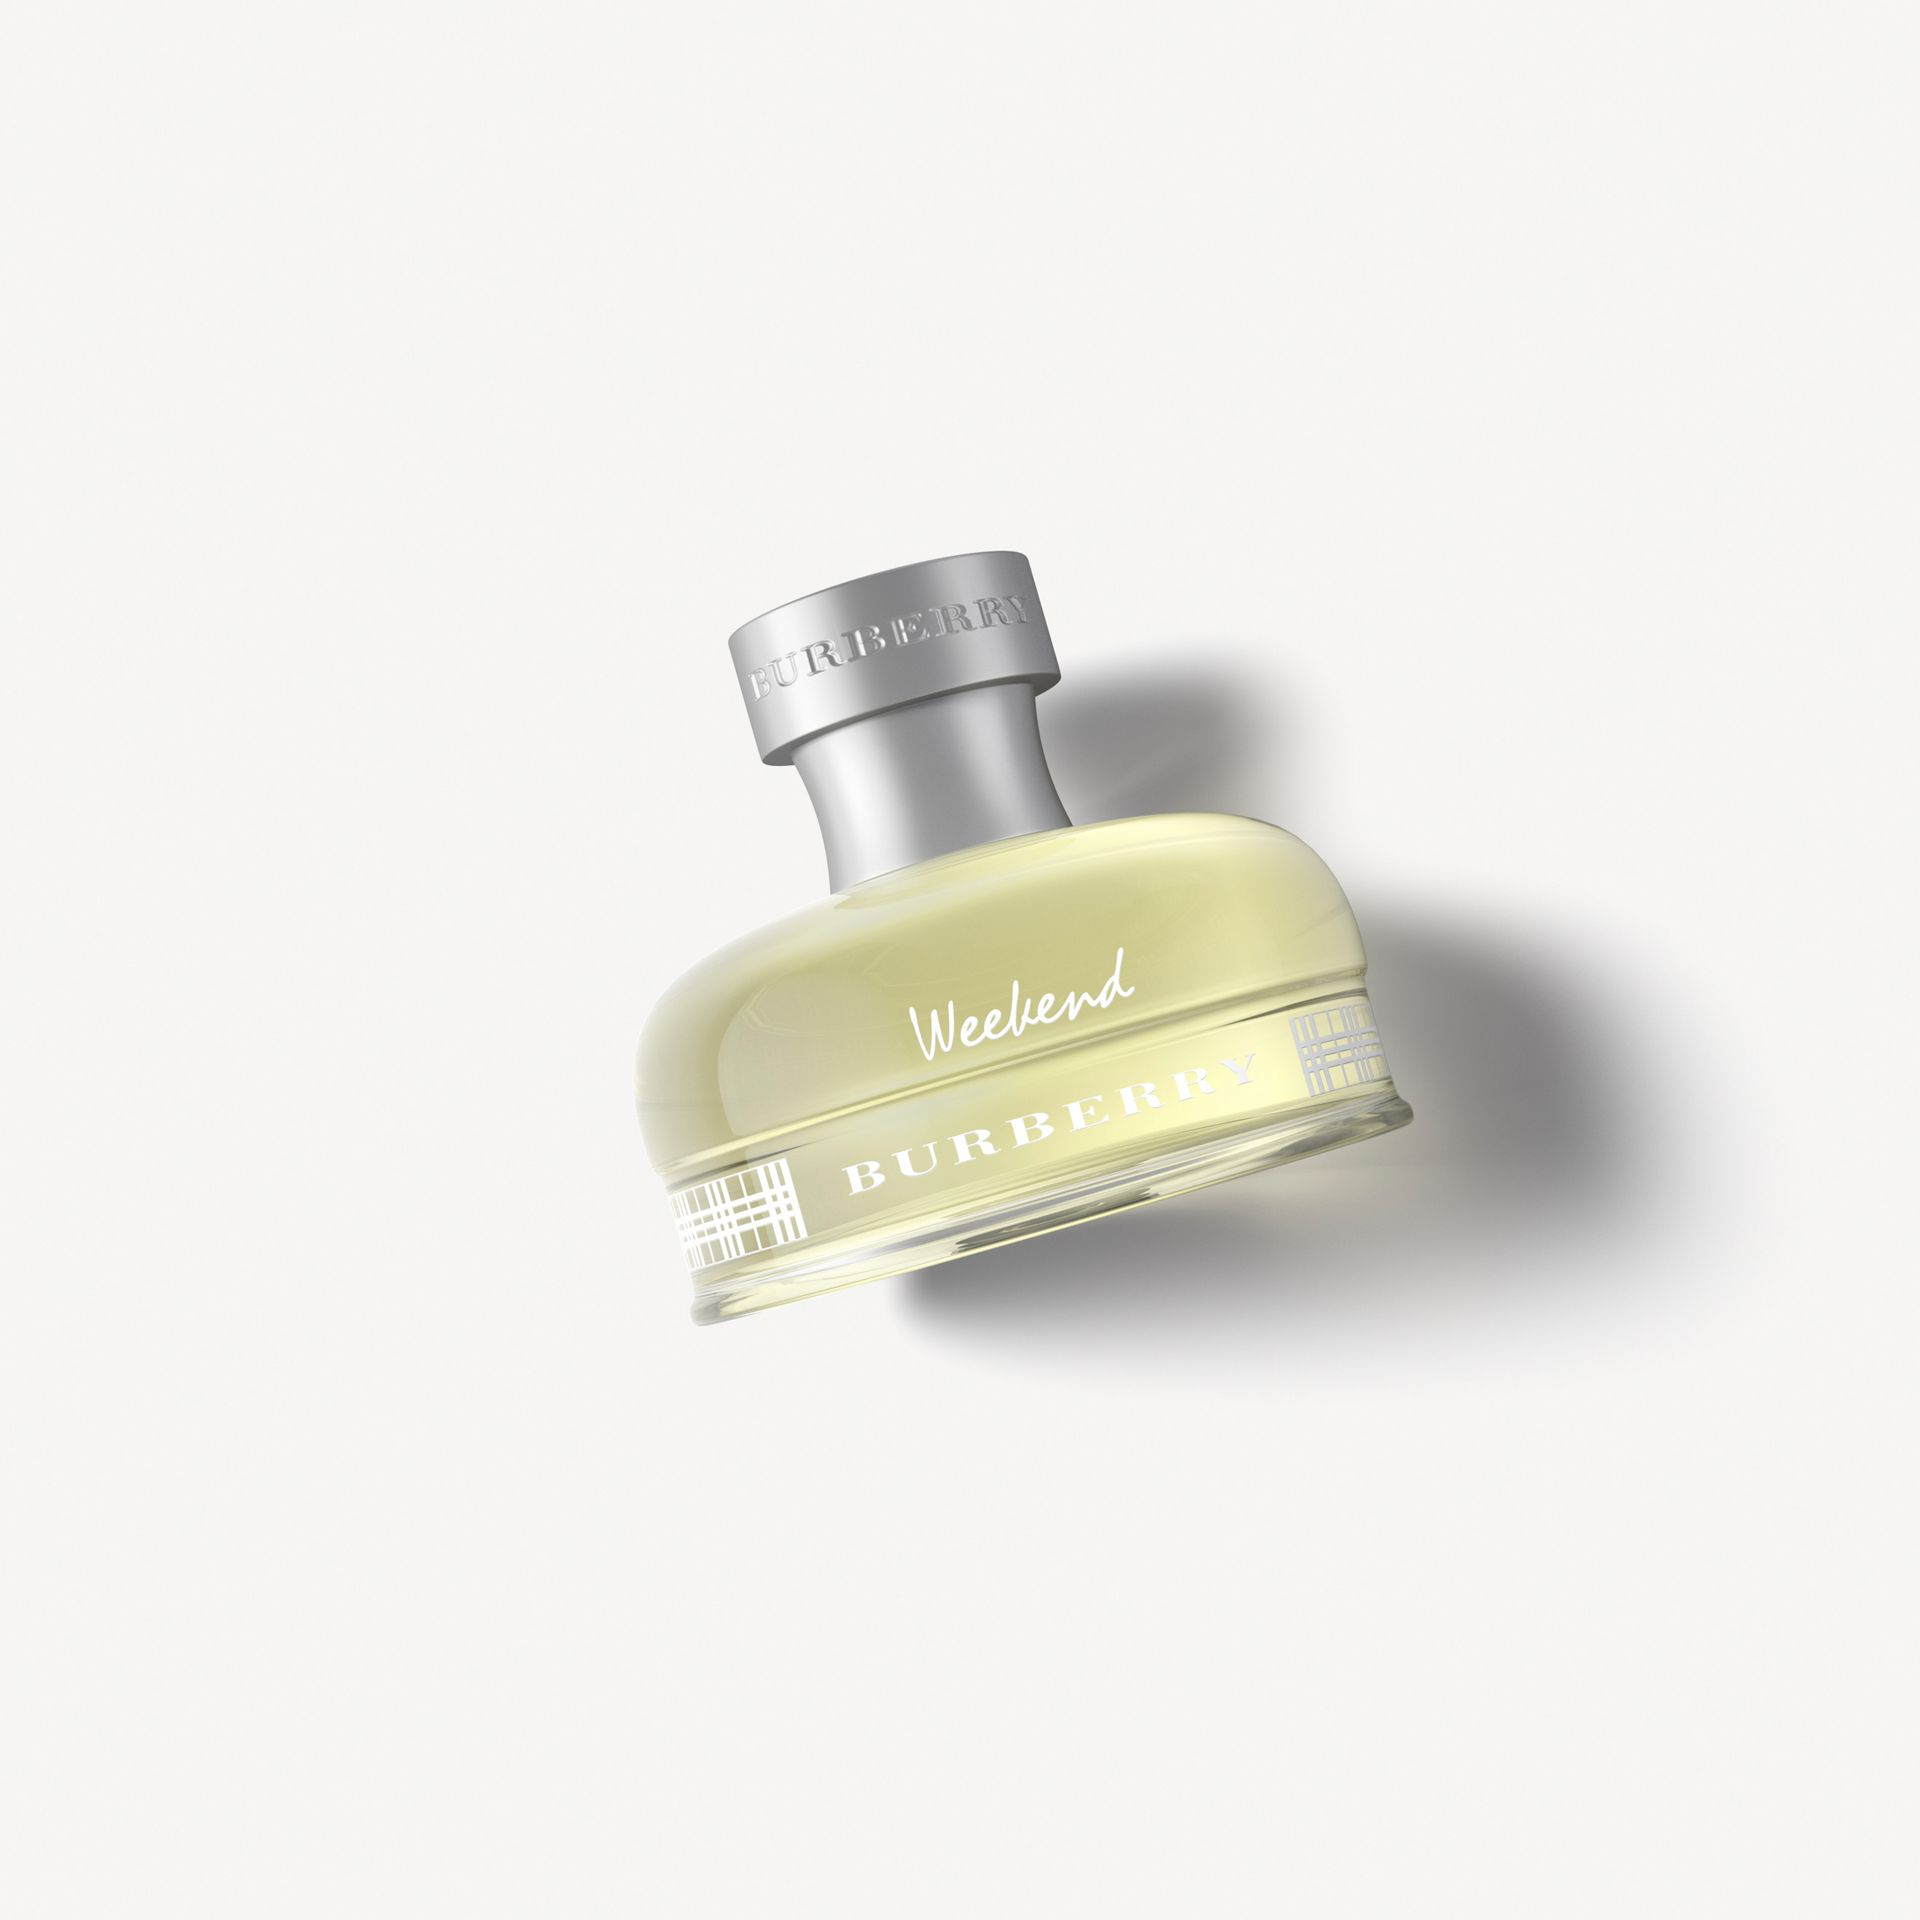 Burberry Weekend Eau de Parfum 50 ml - Donna | Burberry - immagine della galleria 1